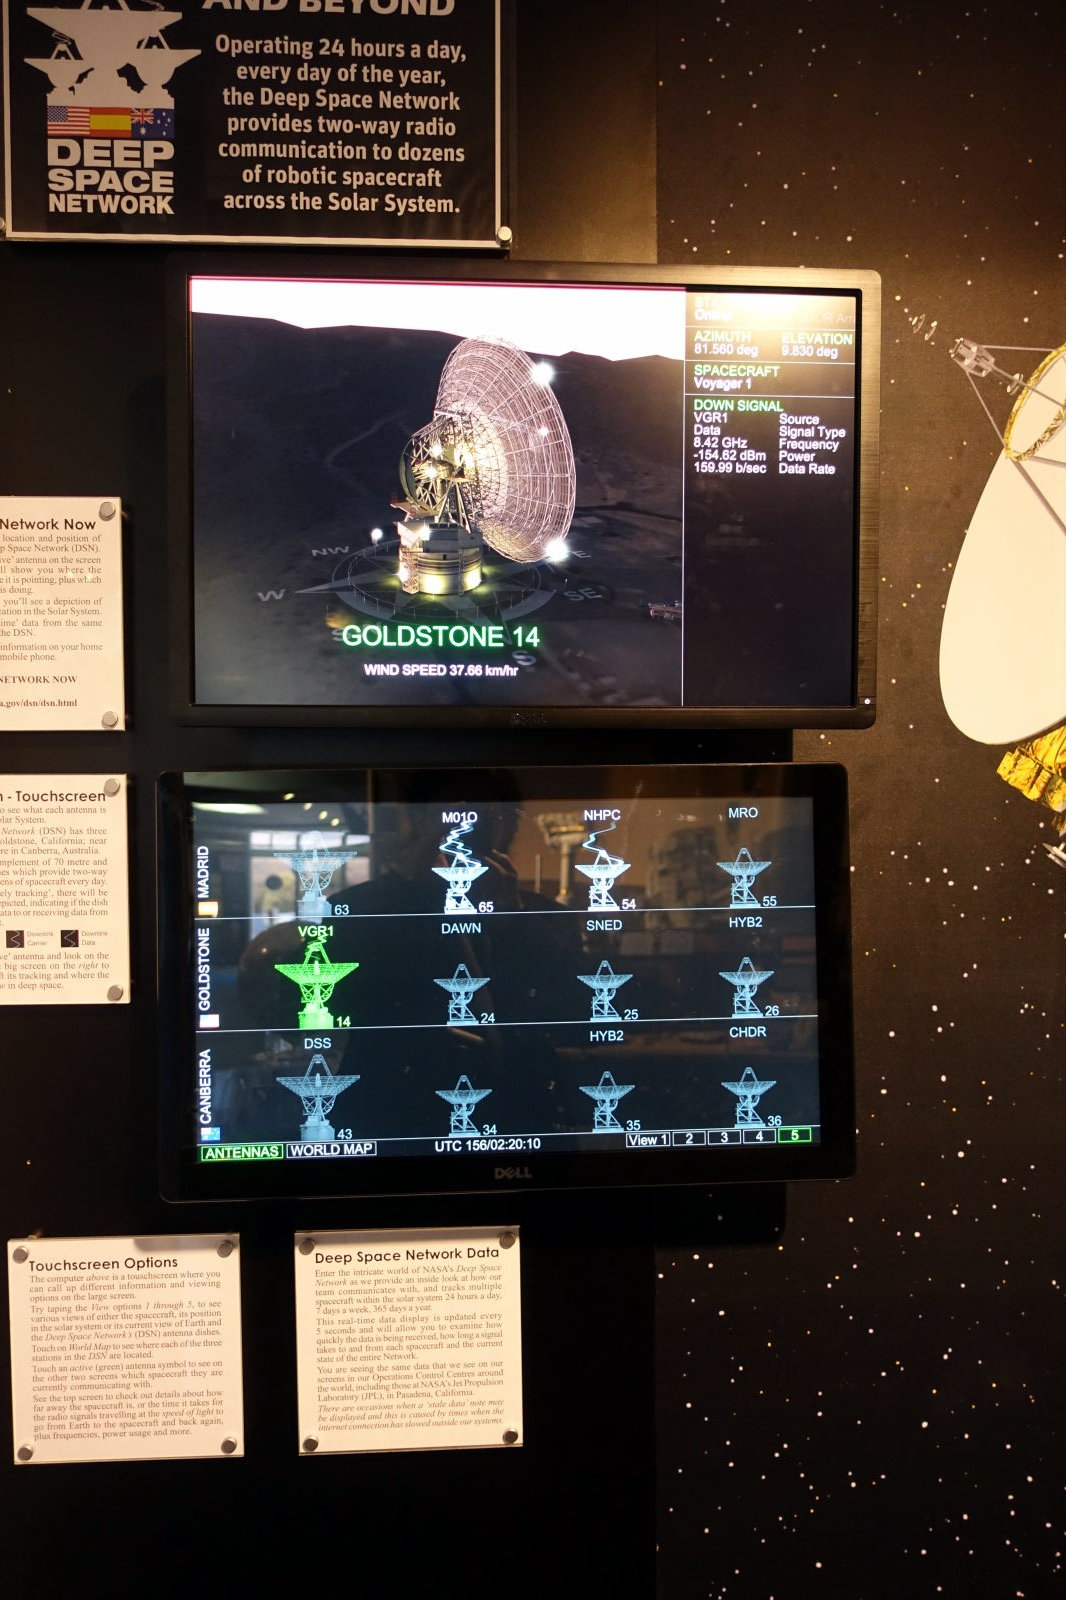 Two screens showing the status of the antennas in CDSCC.